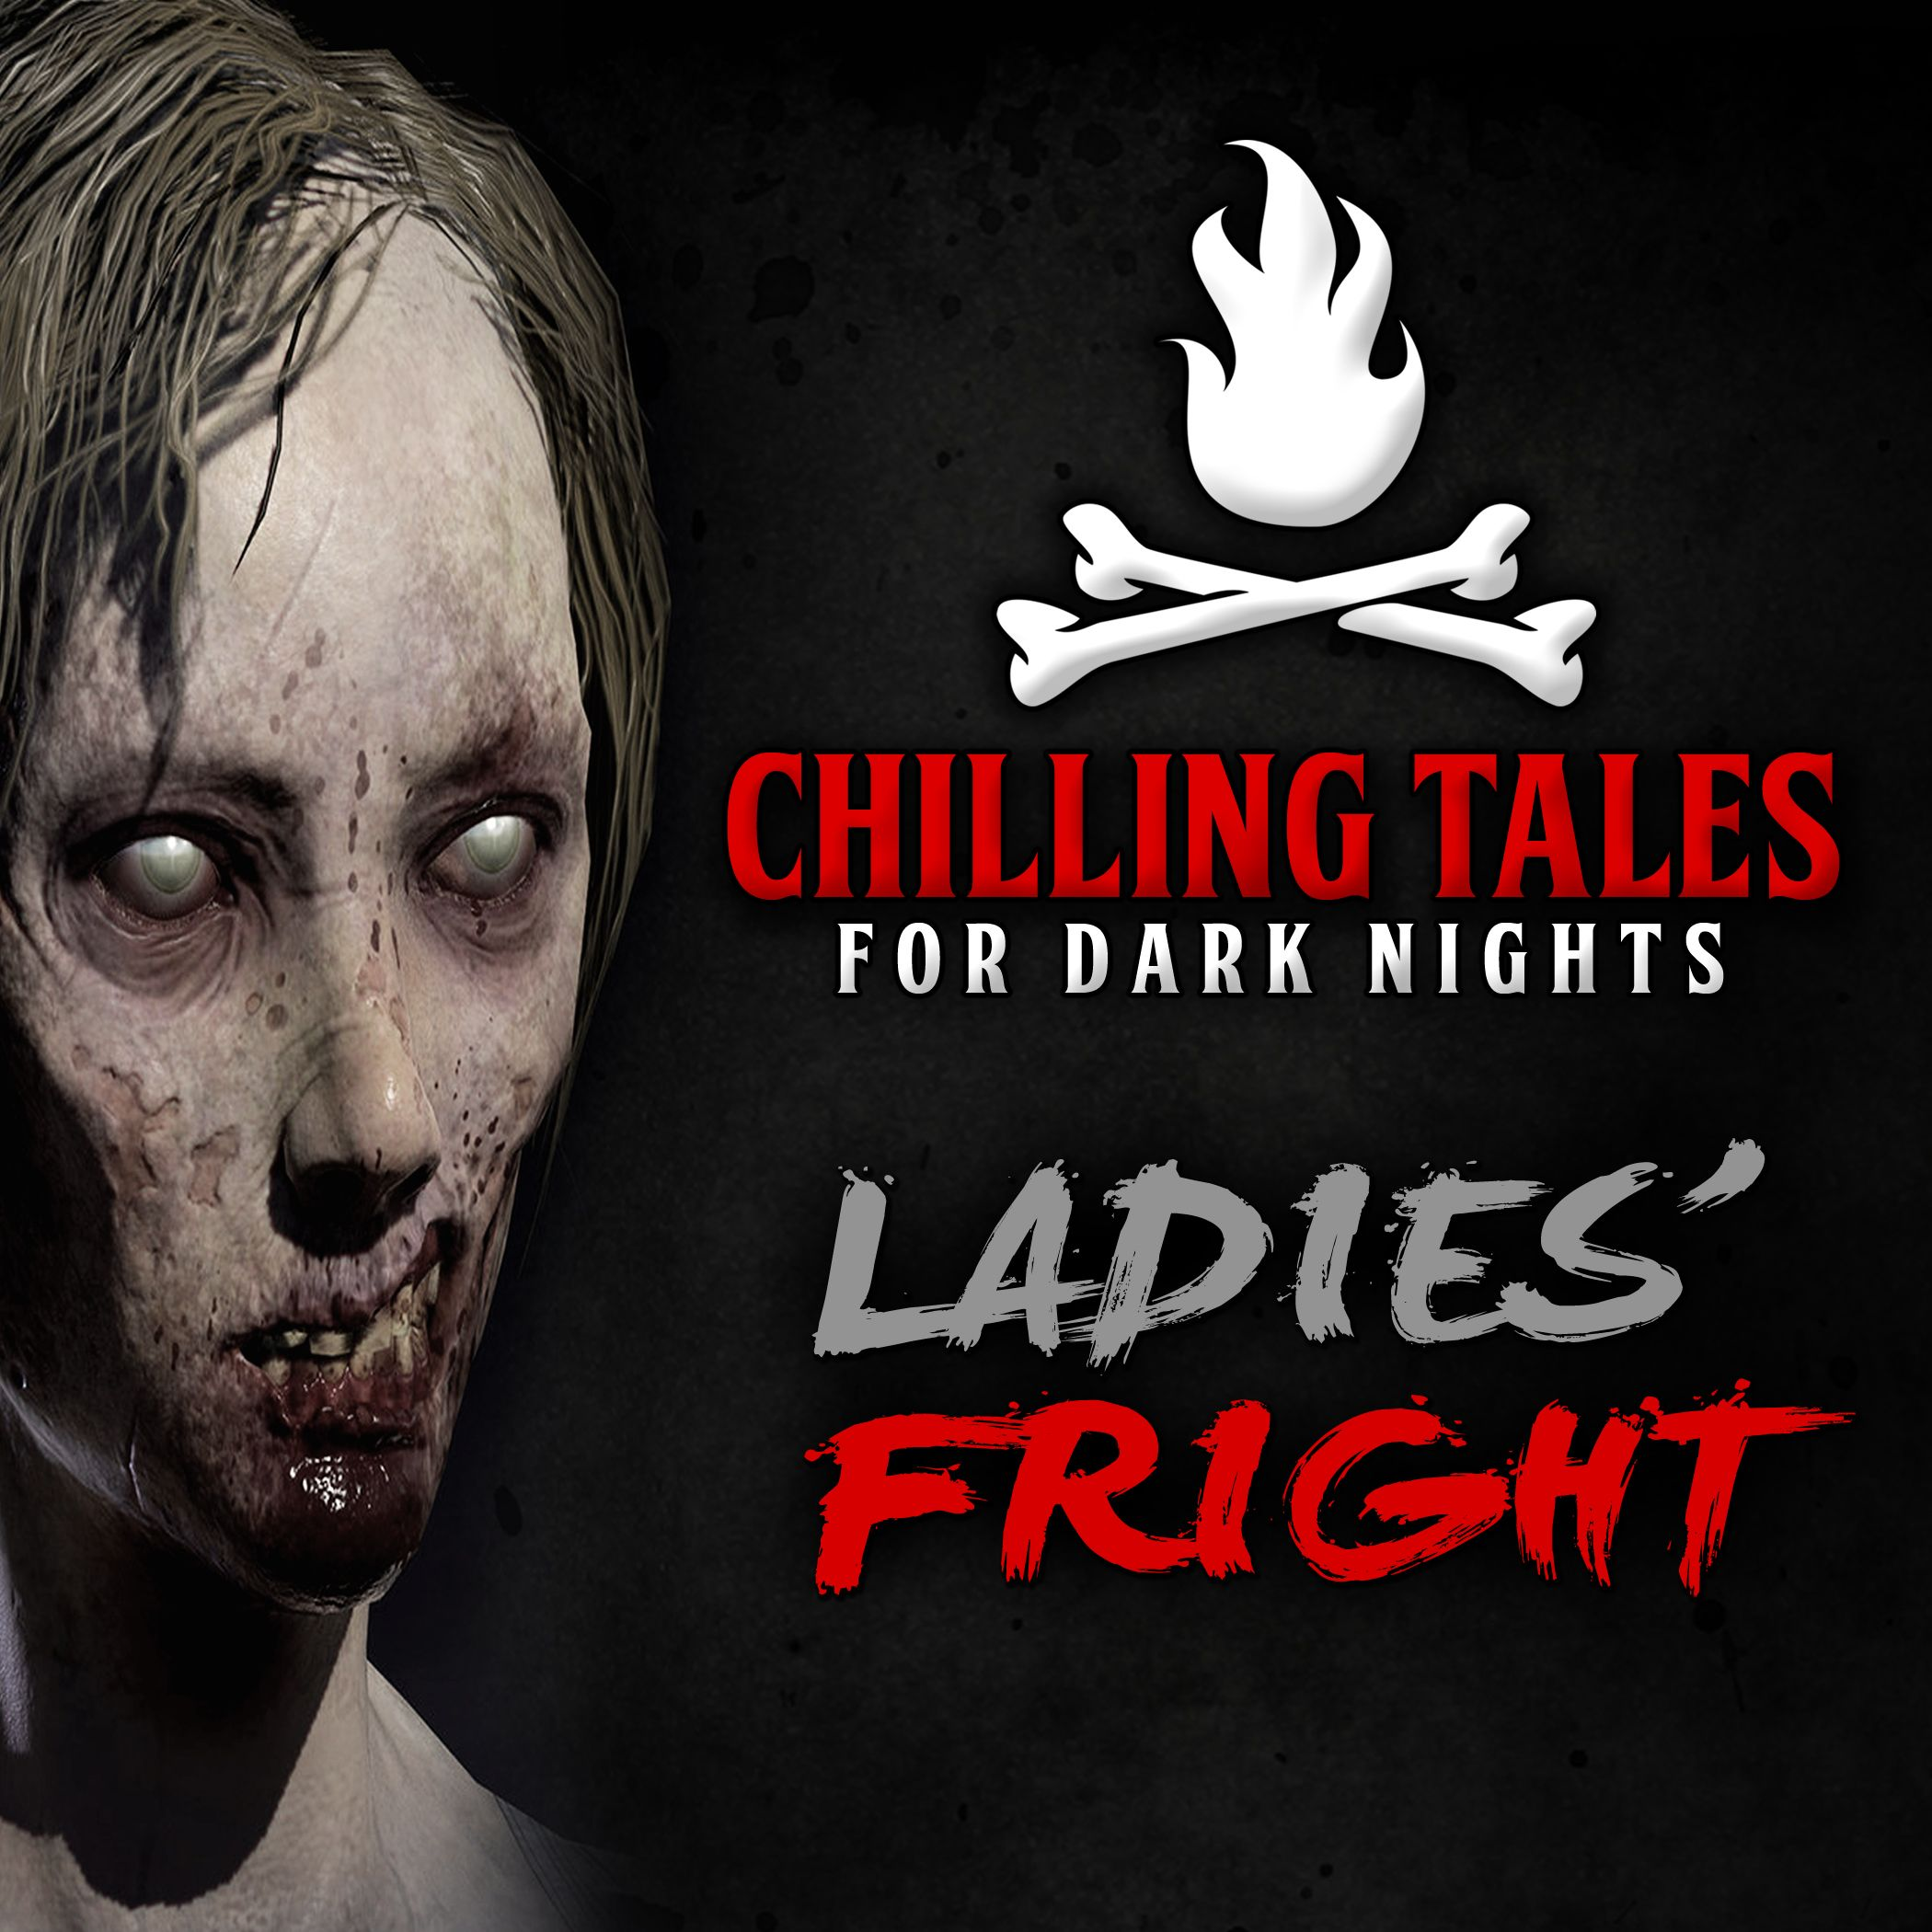 36: Ladies' Fright – Chilling Tales for Dark Nights